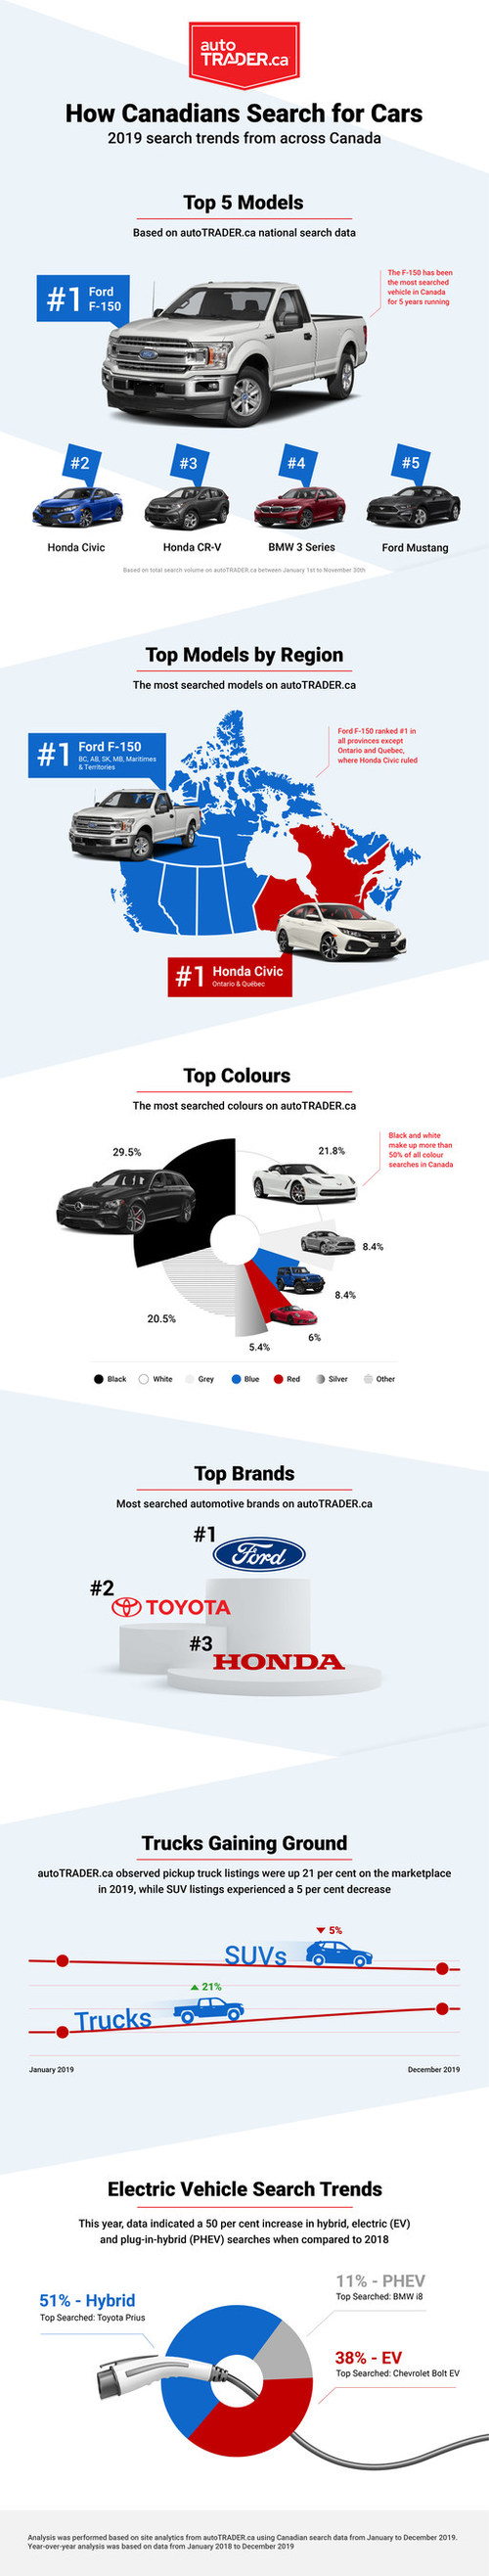 autoTRADER.ca, Canada's most trusted automotive marketplace, mines and analyzes its site search data each year, to capture the pulse of Canadian car buyers' interests. (CNW Group/autoTRADER.ca)